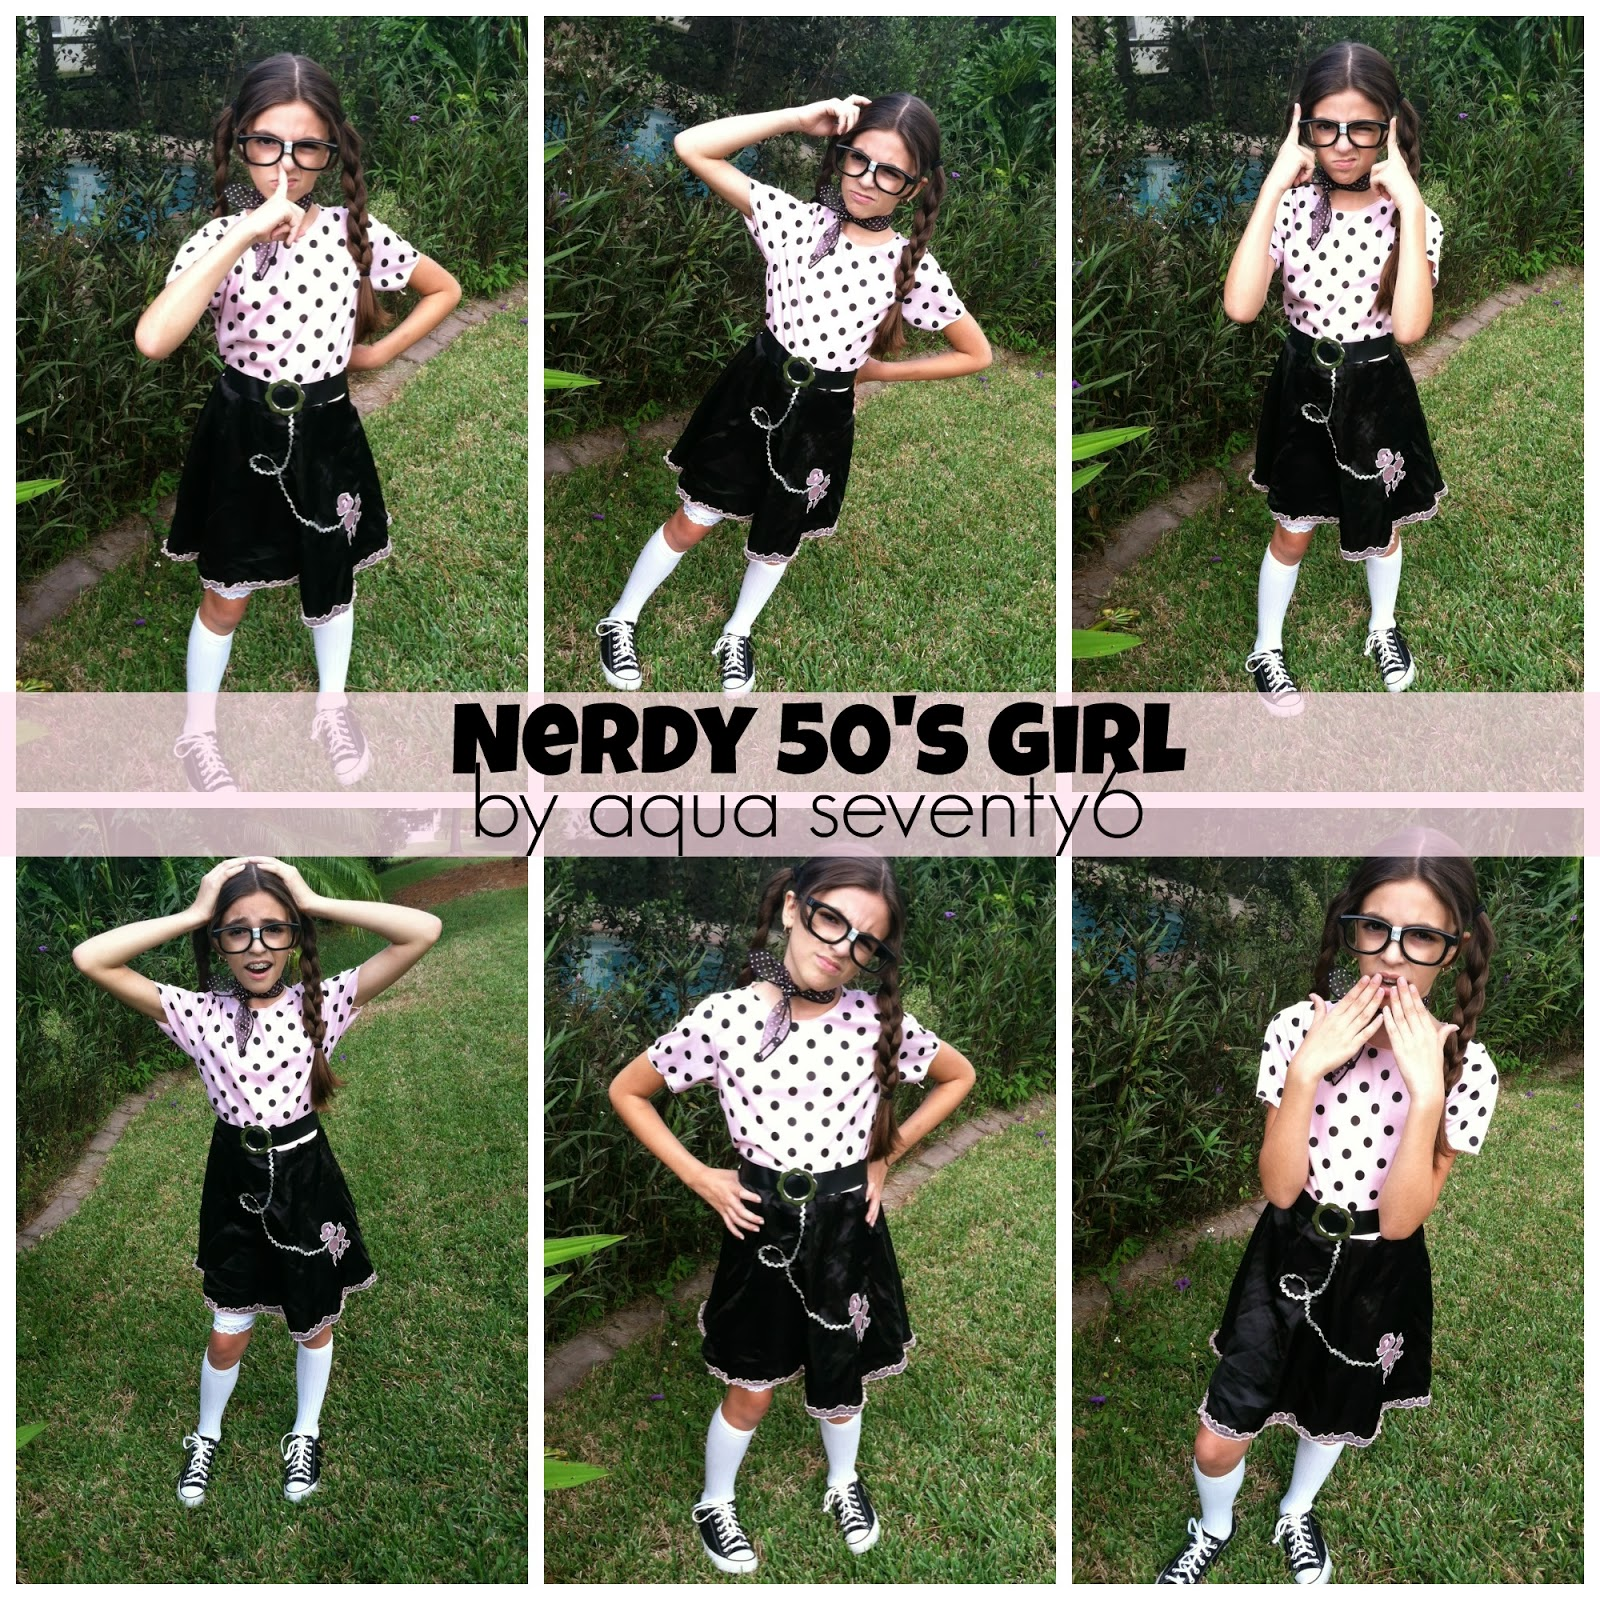 nerdy 50s girl putting a twist on a store bought halloween costume